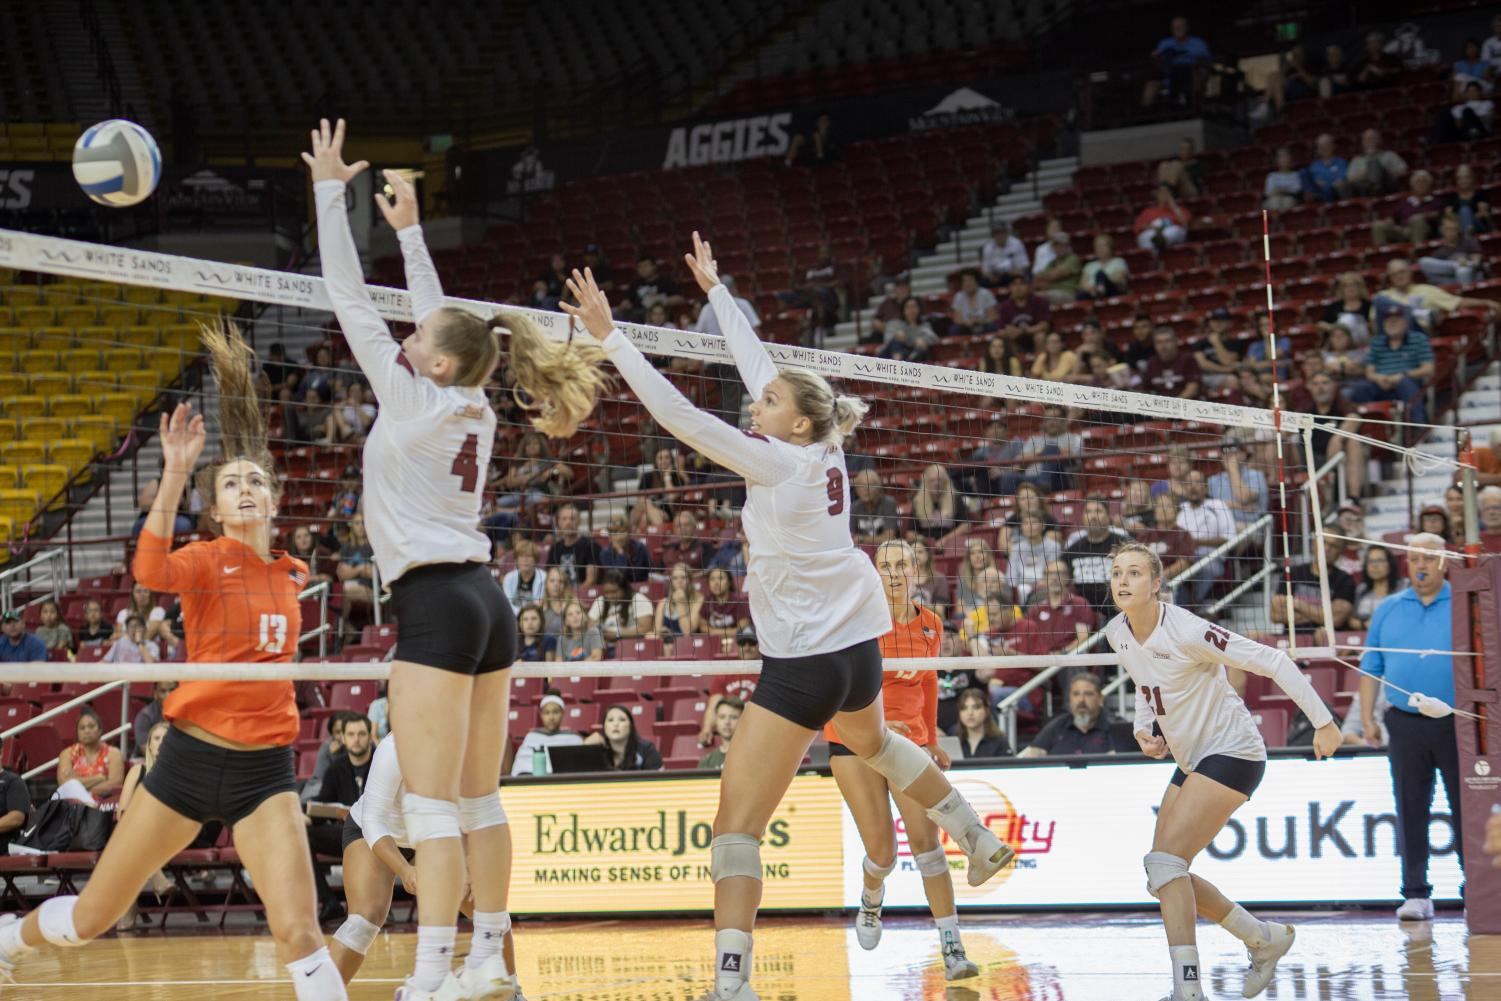 NM State sets a program record with 27 blocks in their straight-set win over Pacific.